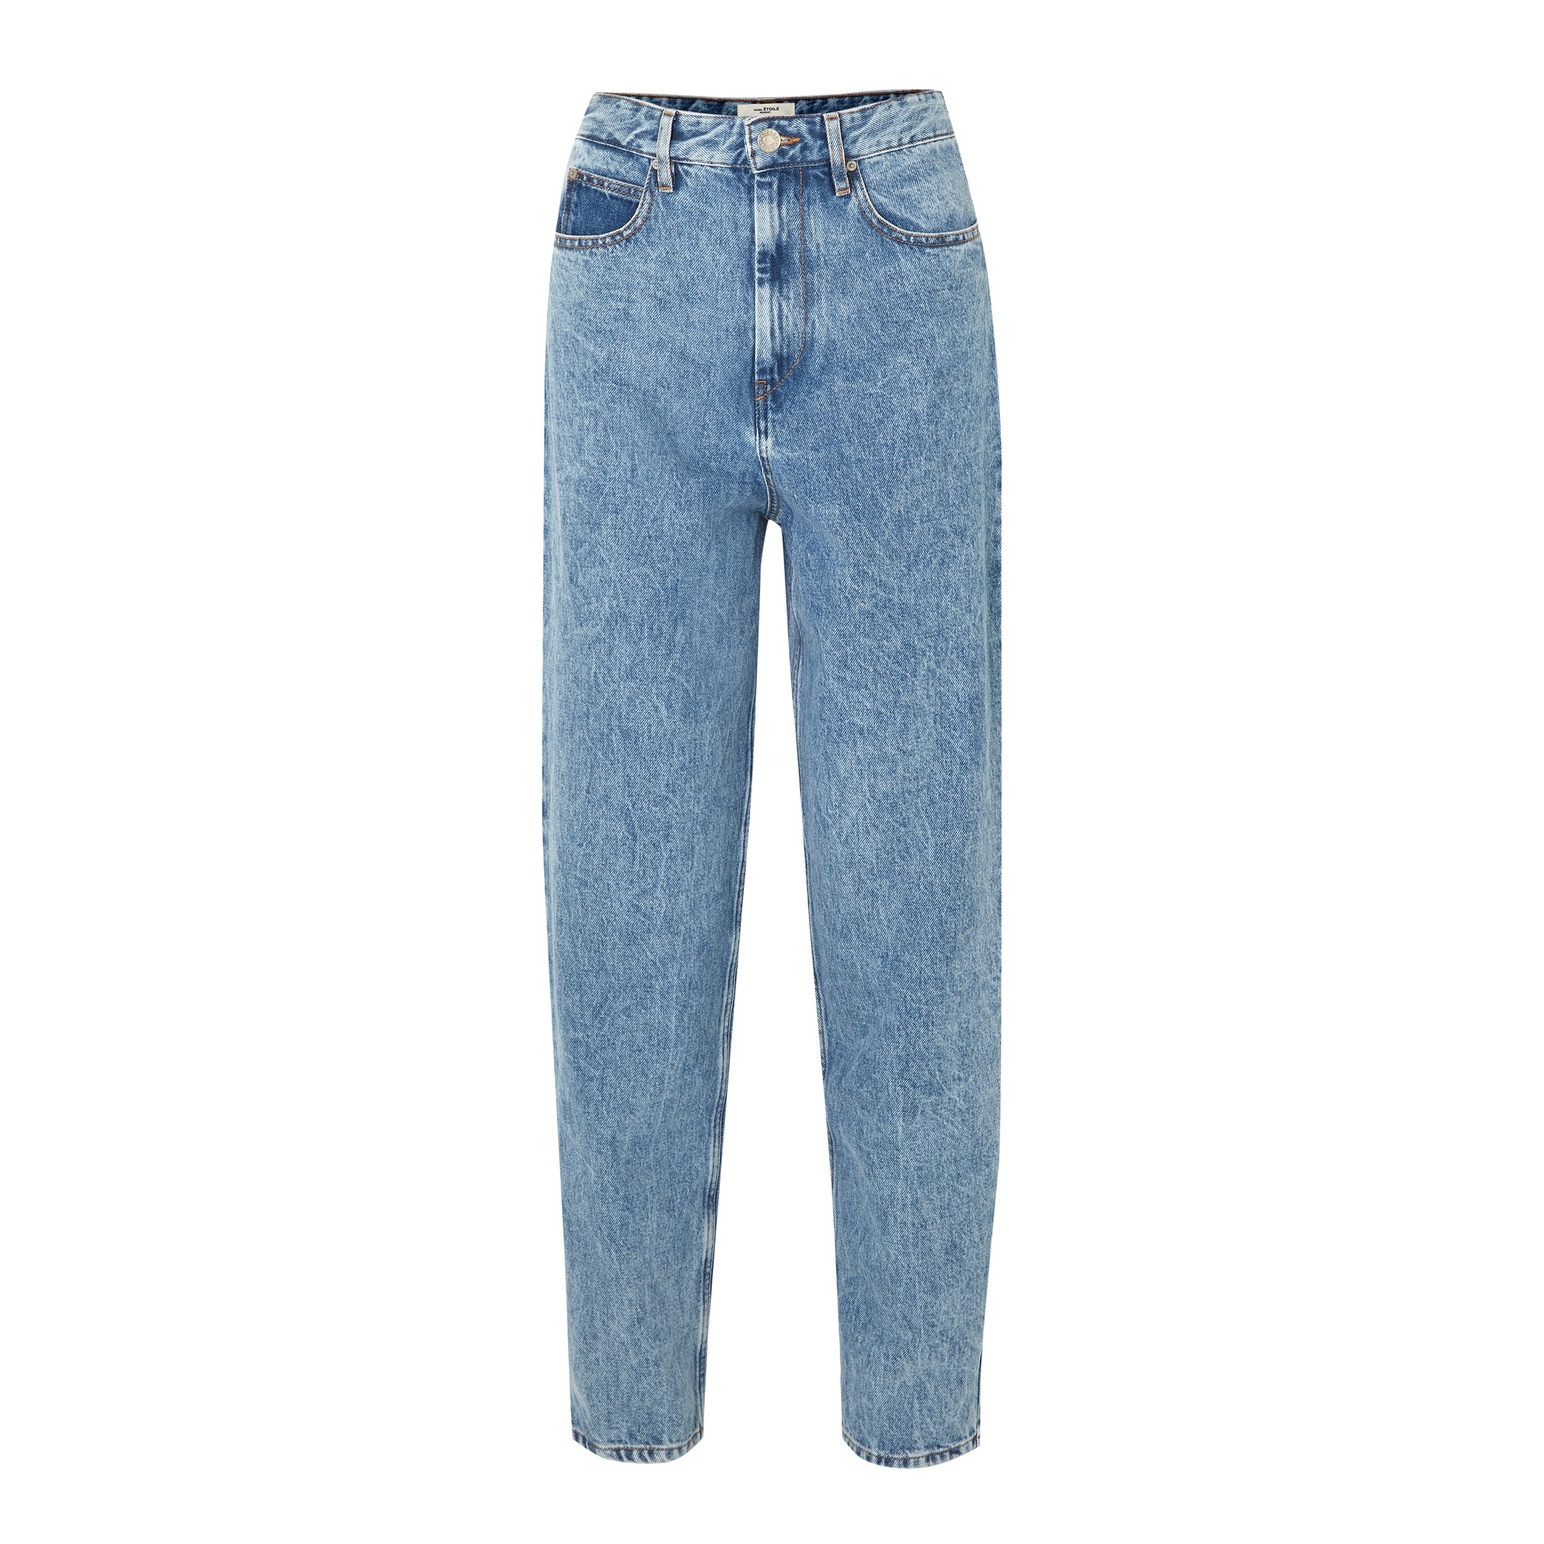 Corsyj High-Rise Tapered Jeans